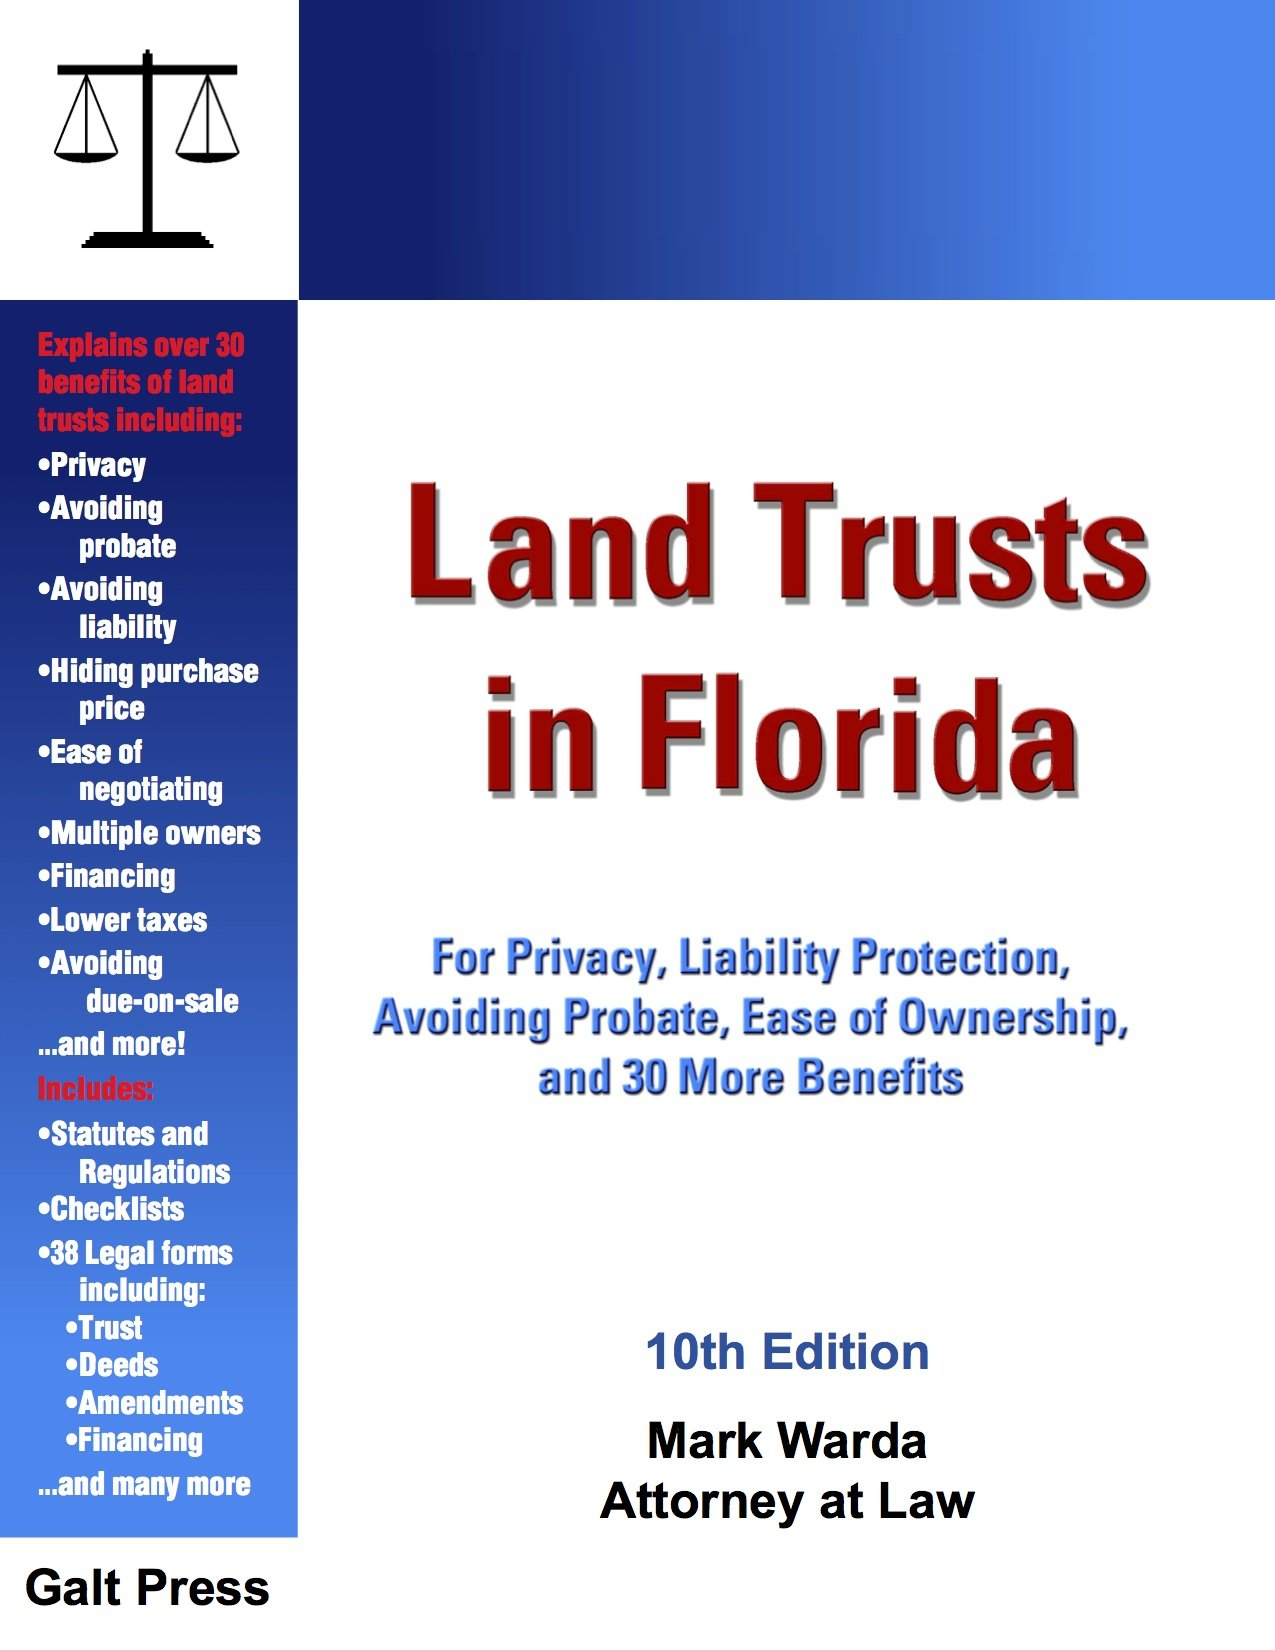 land trusts in florida mark warda 9781888699159 amazon com books